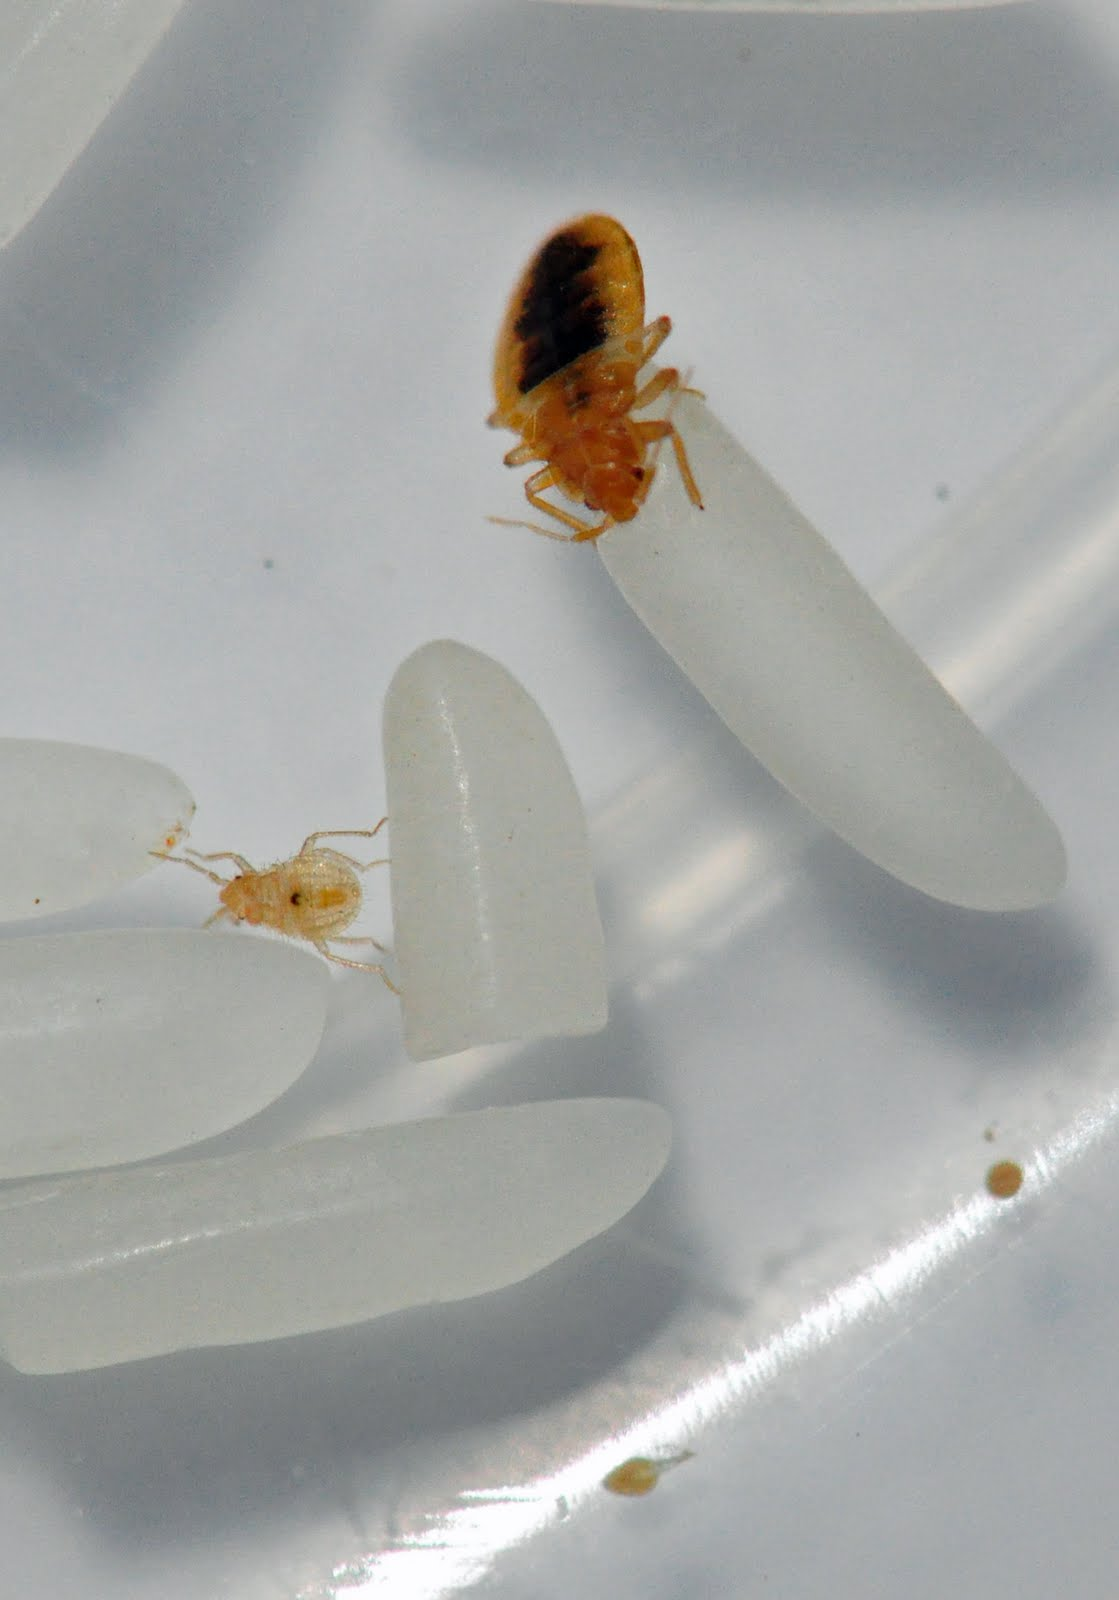 The Pest Advice How Fast Do Bed Bugs Breed